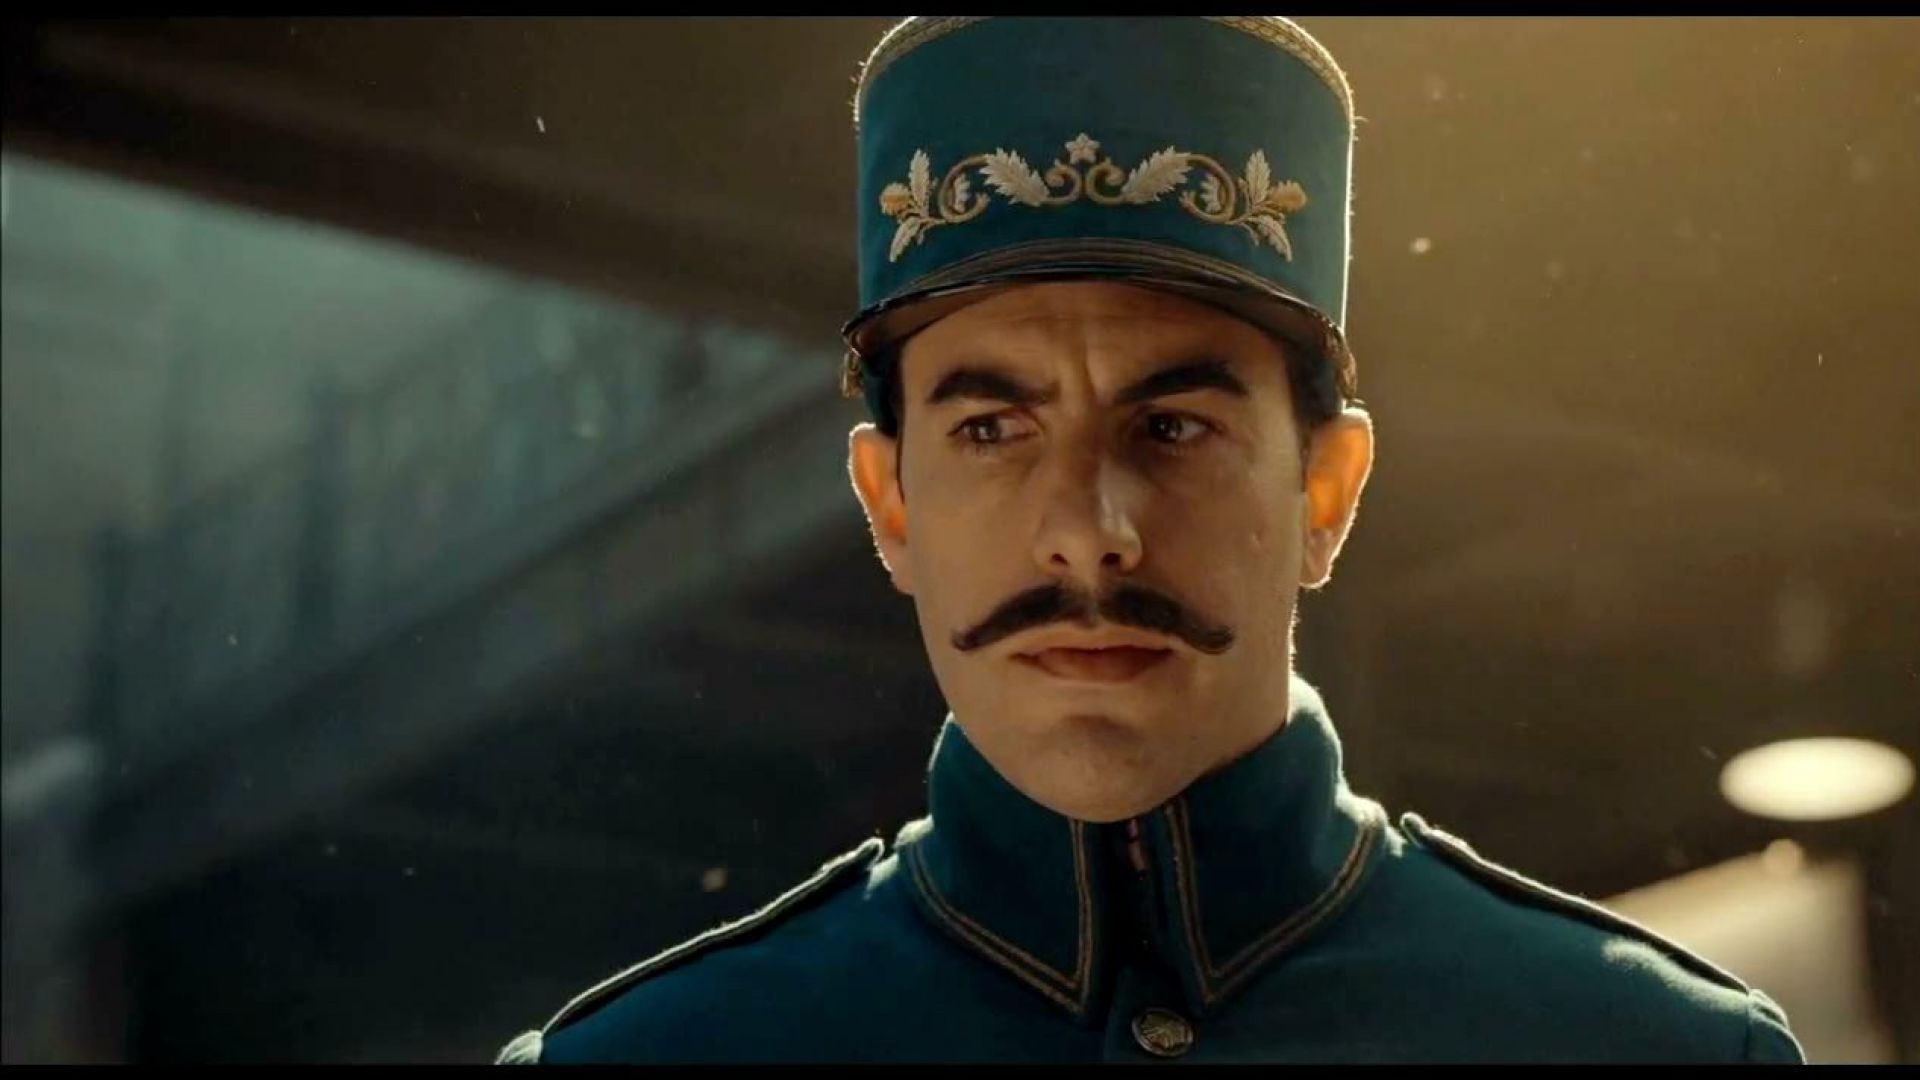 Sacha Baron Cohen as the station inspector in Hugo